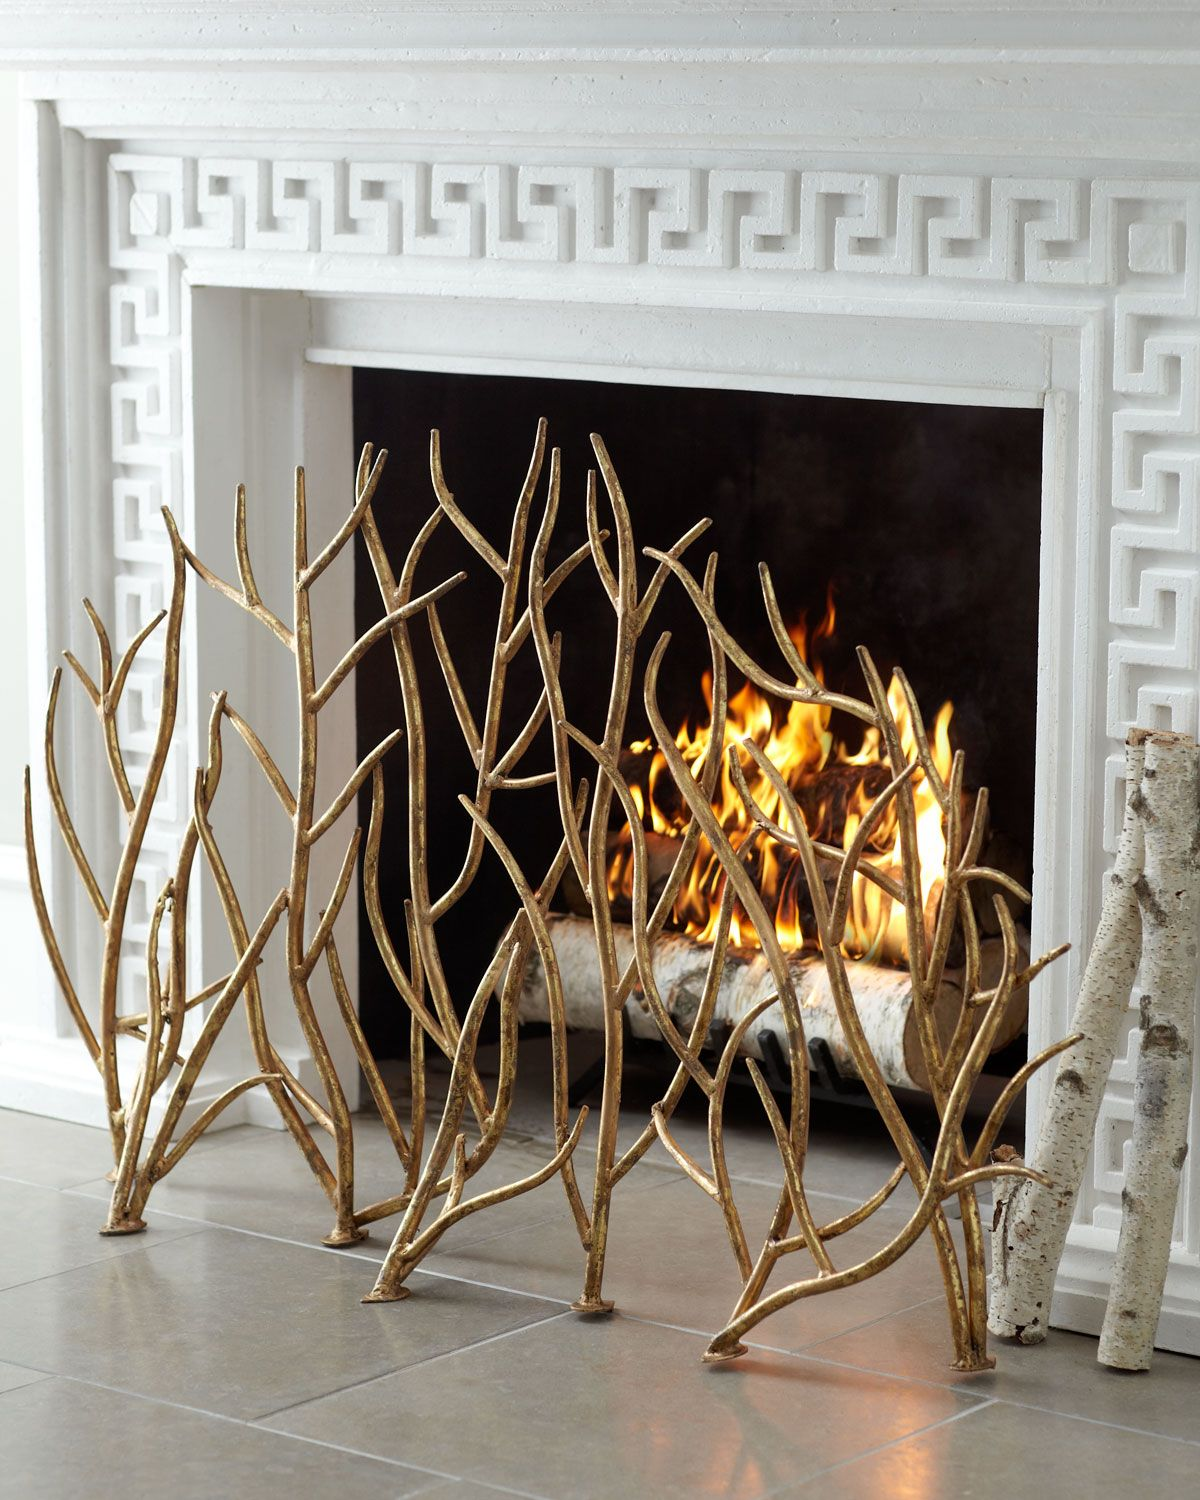 Fireplace Cover Ideas 10 Ways To Decorate Your In The Summer Since You Won